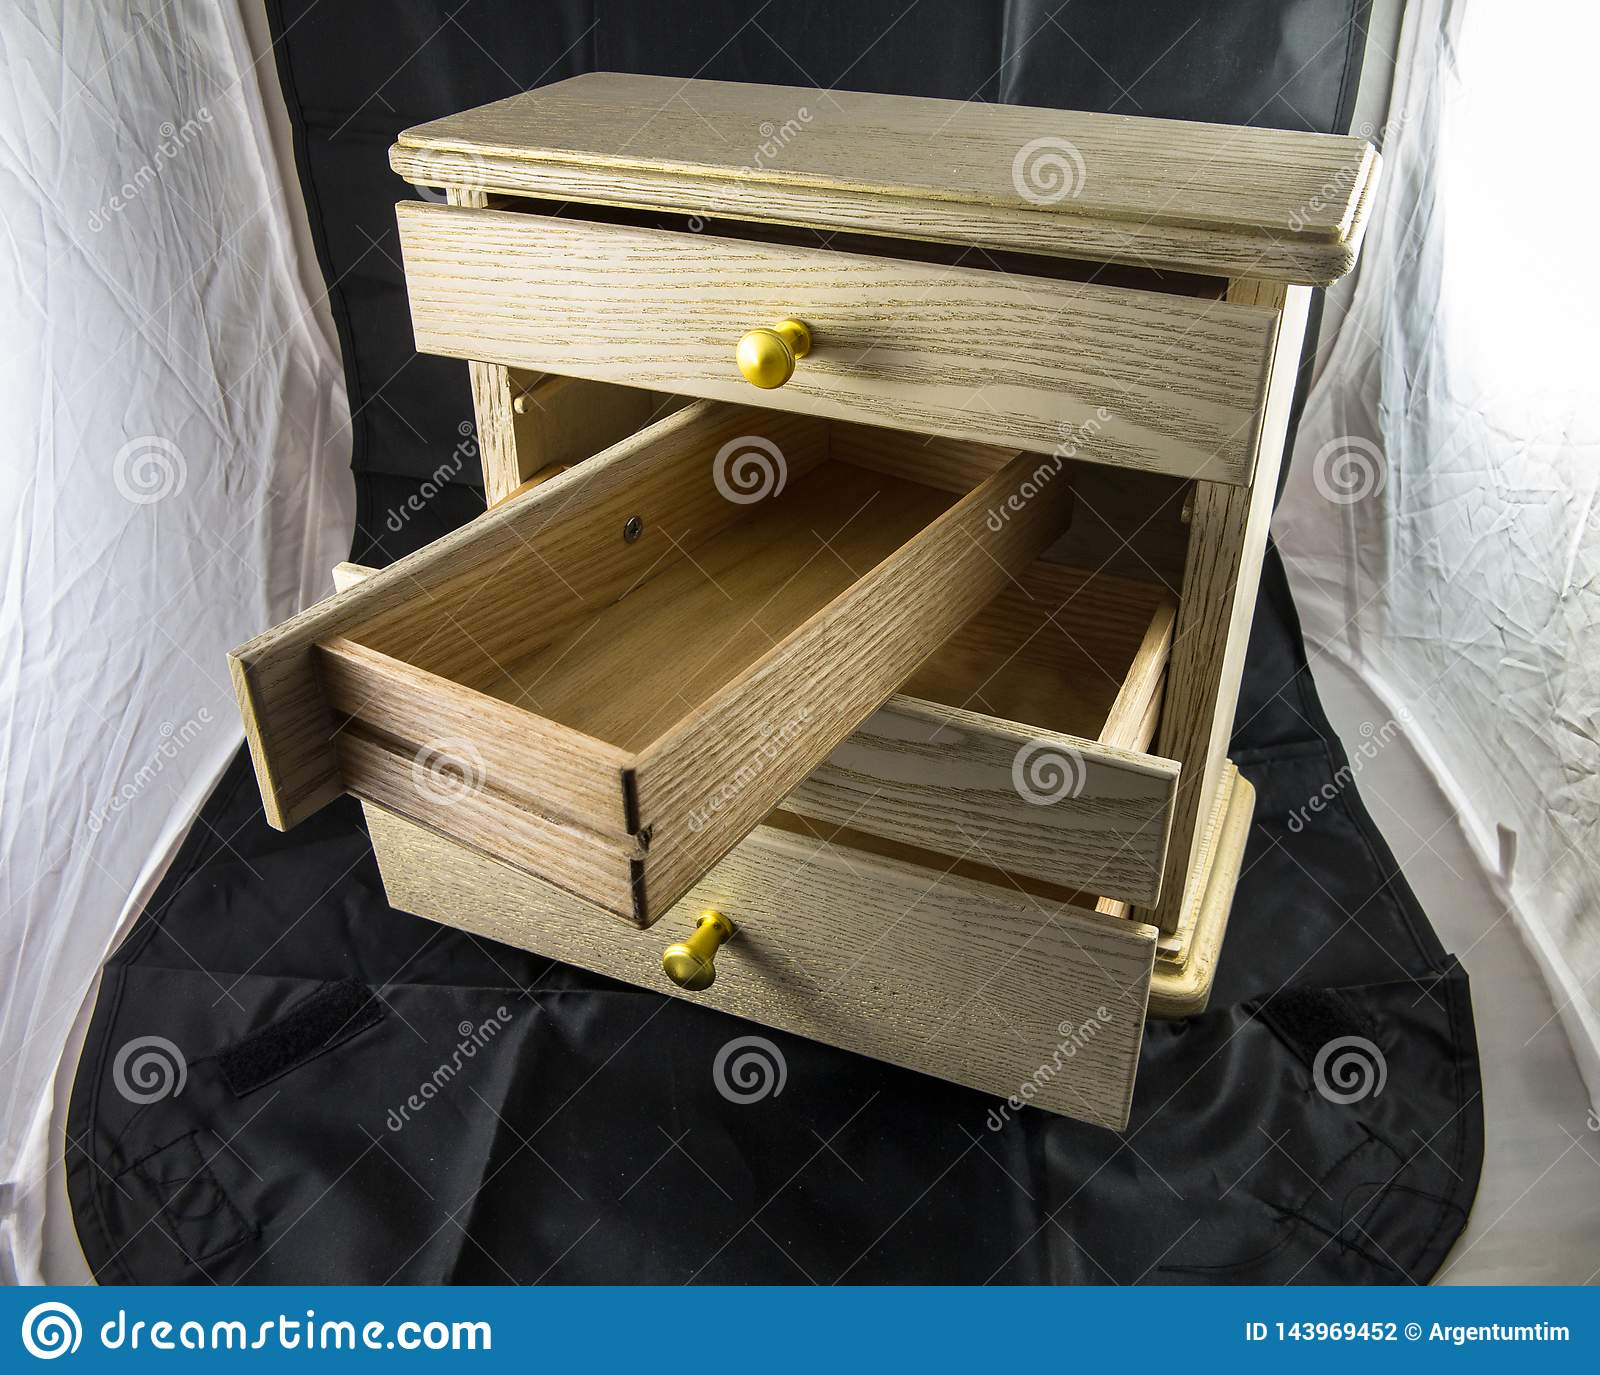 Wooden box with shelves for jewelry